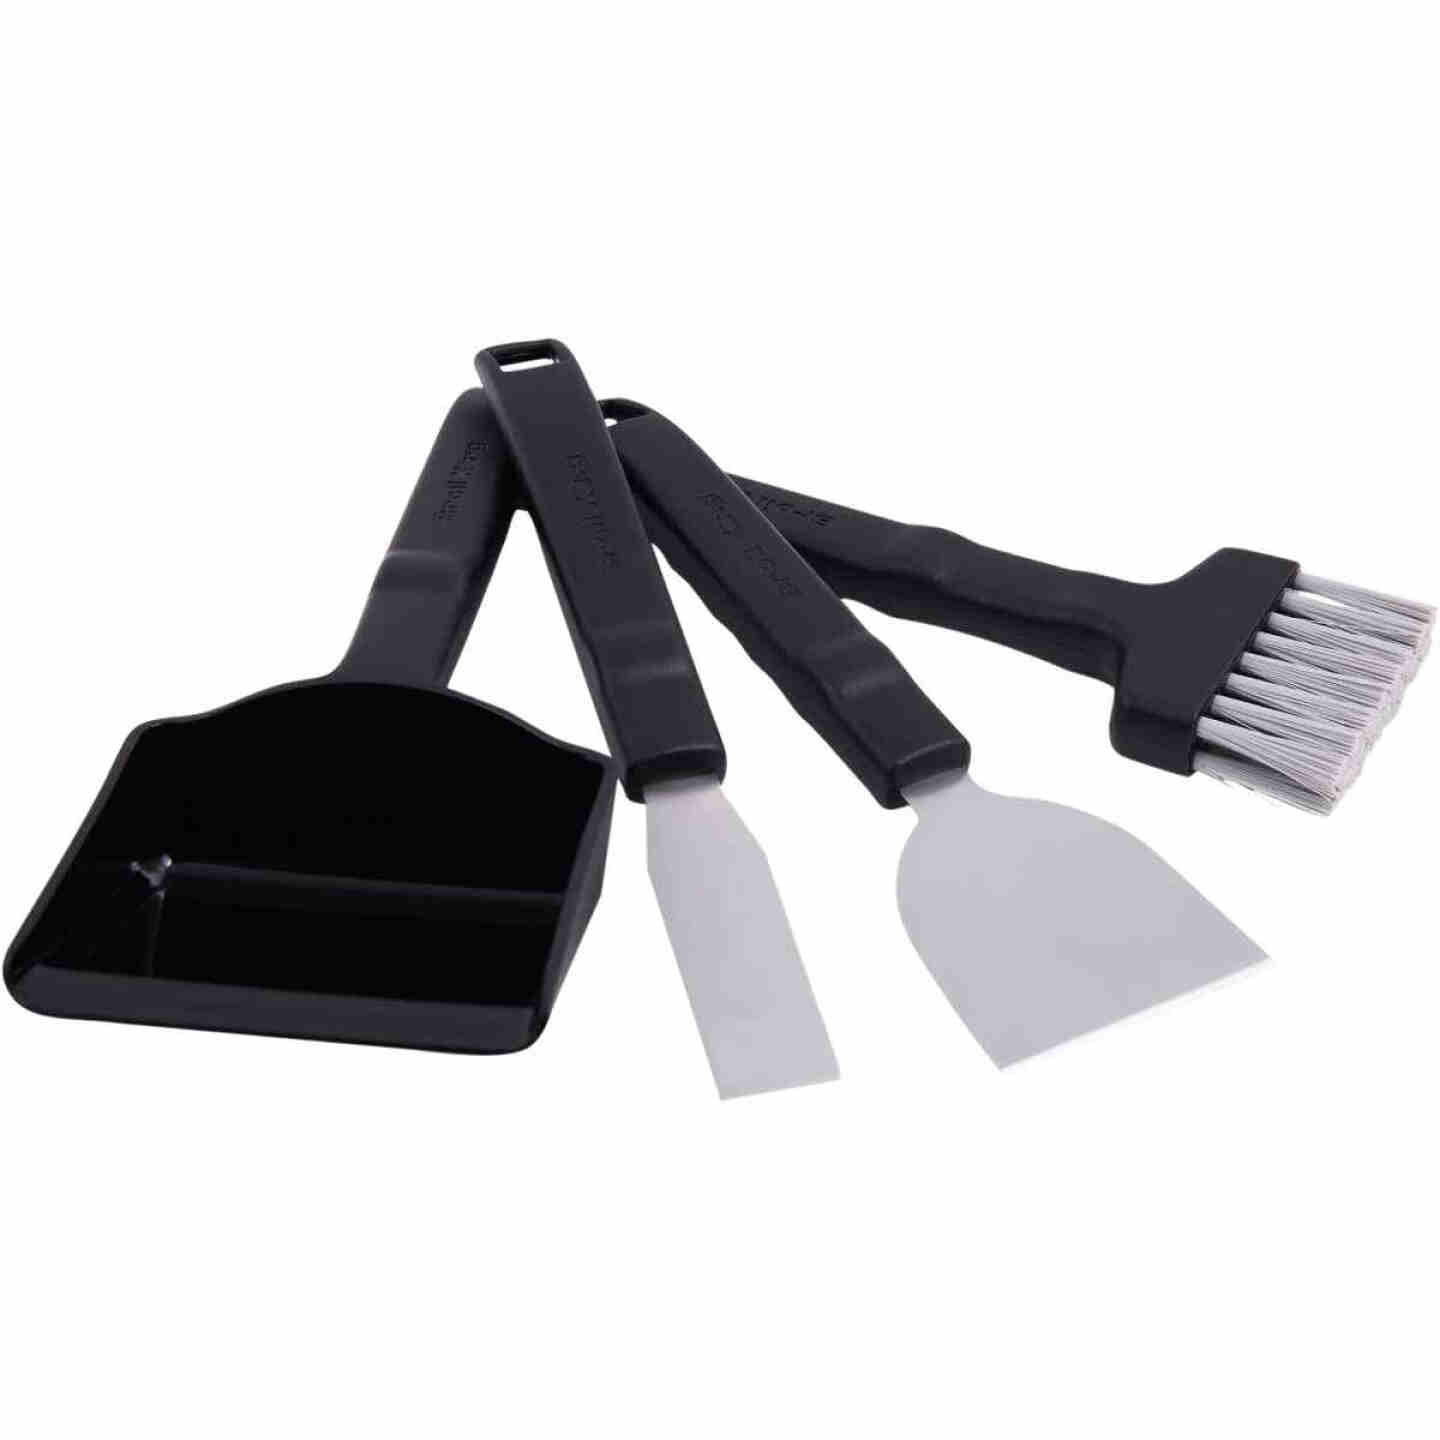 Broil King Pellet & Gas Grill Cleaning Kit Image 1